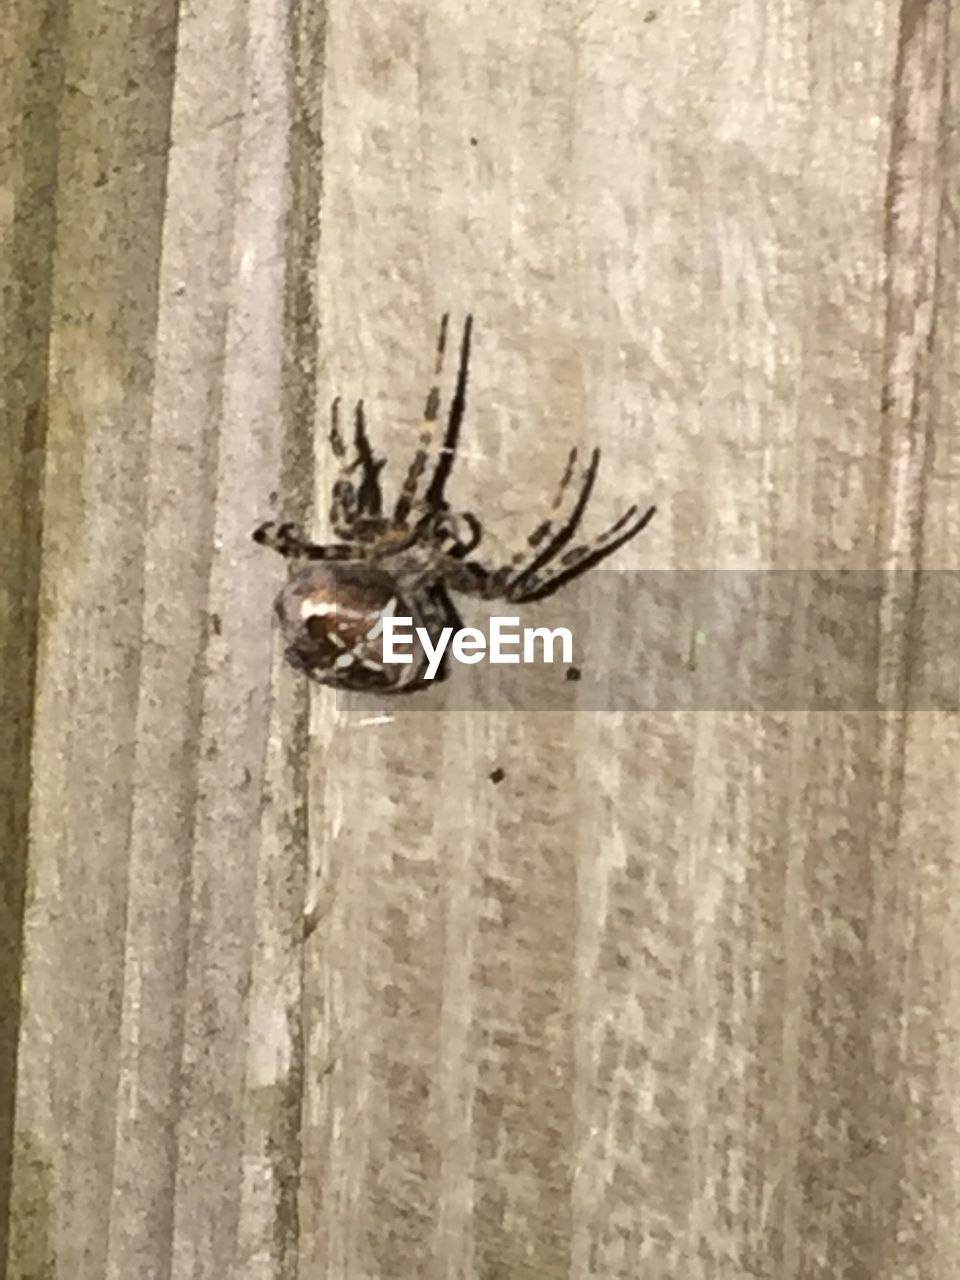 animal themes, one animal, insect, spider, animals in the wild, no people, close-up, day, animal wildlife, outdoors, nature